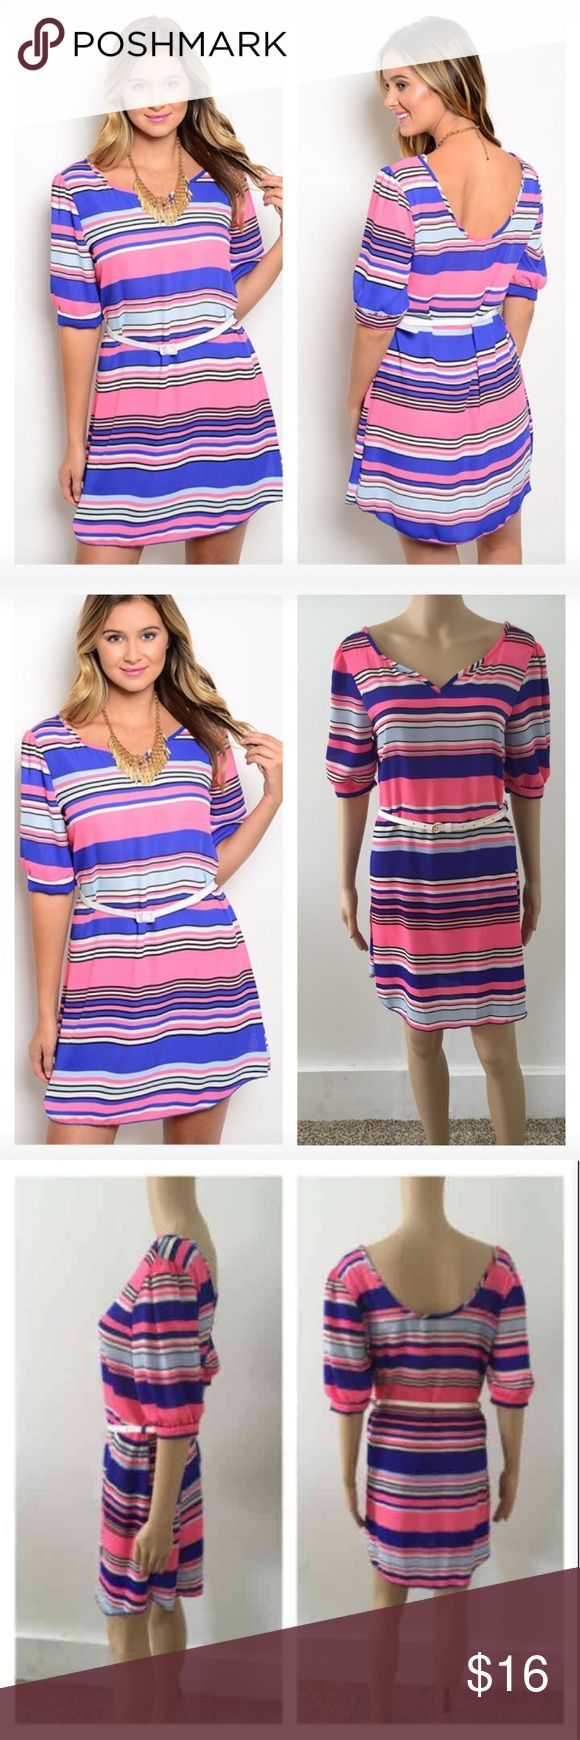 NEW large striped belted dress ****PRICE FIRM NO TRADES****  Very cute short dress featuring a striped pattern, slightly curved hemline, and scooped back neckline. Dress comes with belt at waist as seen in pics.   Item is brand new   Color: pink and blue stripes  ****PRICE FIRM NO TRADES**** ****PRICE FIRM NO TRADES**** ****PRICE FIRM NO TRADES**** Dresses Mini